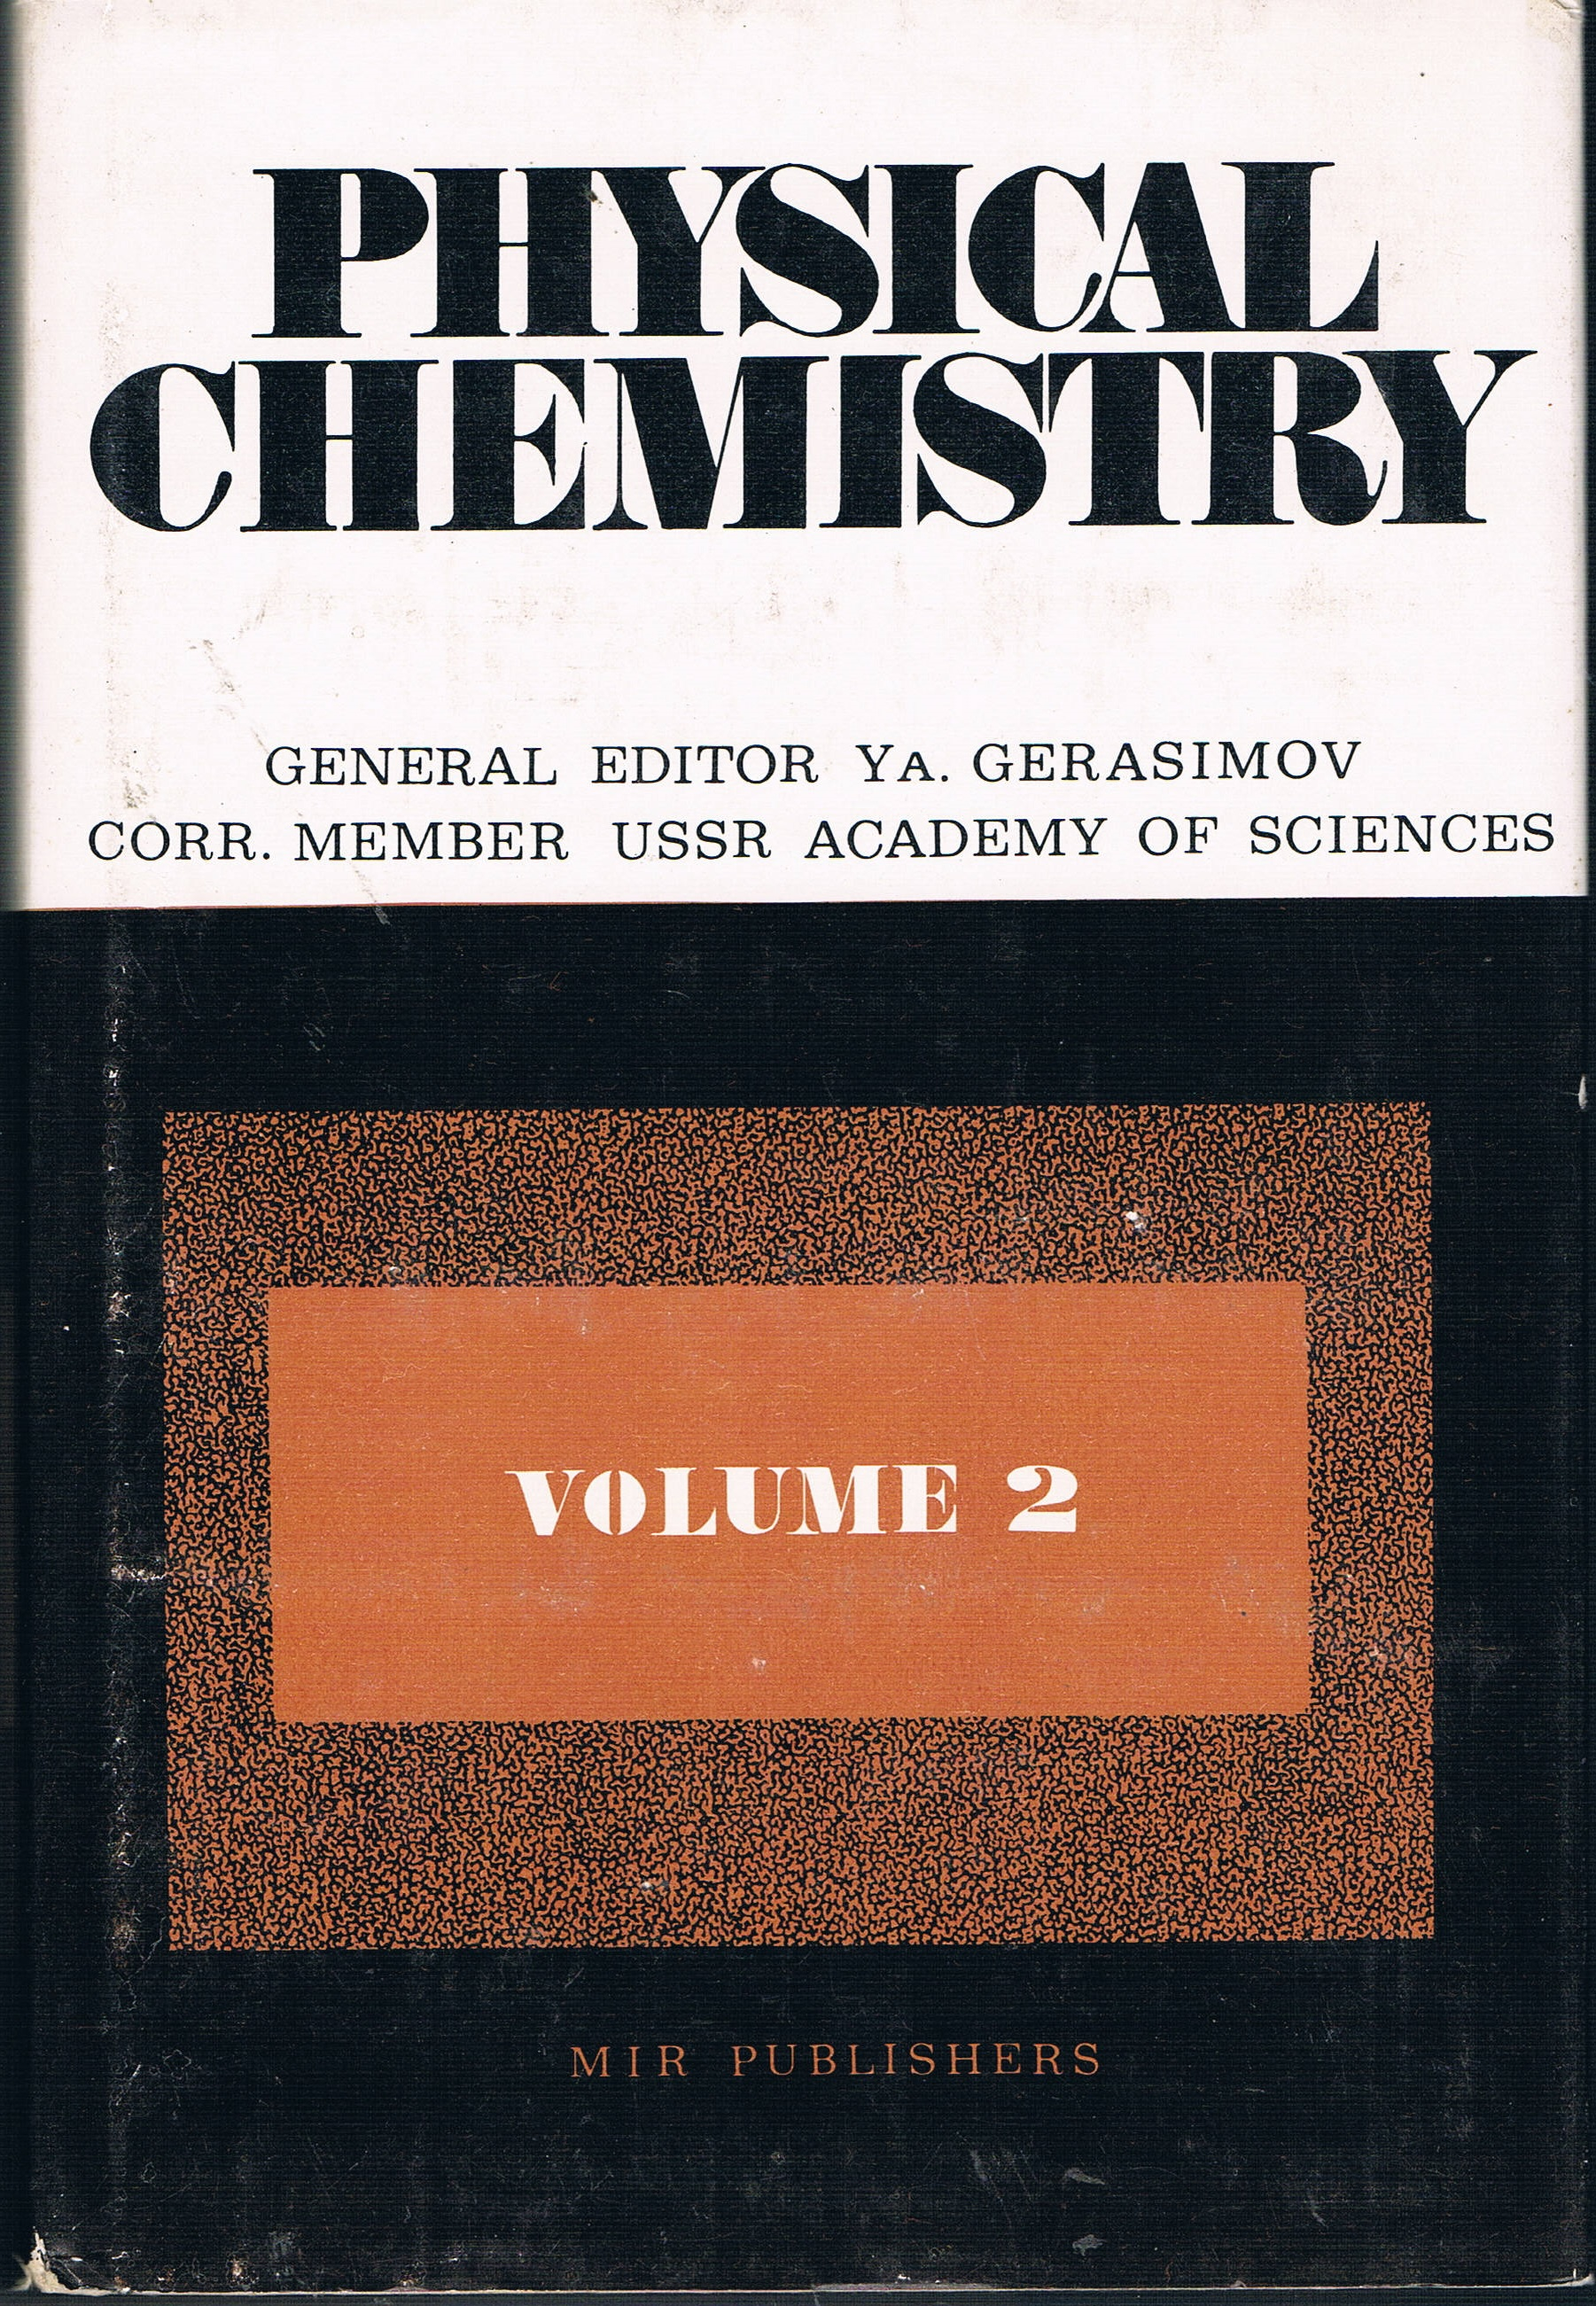 Physical Chemistry, Vol. 2